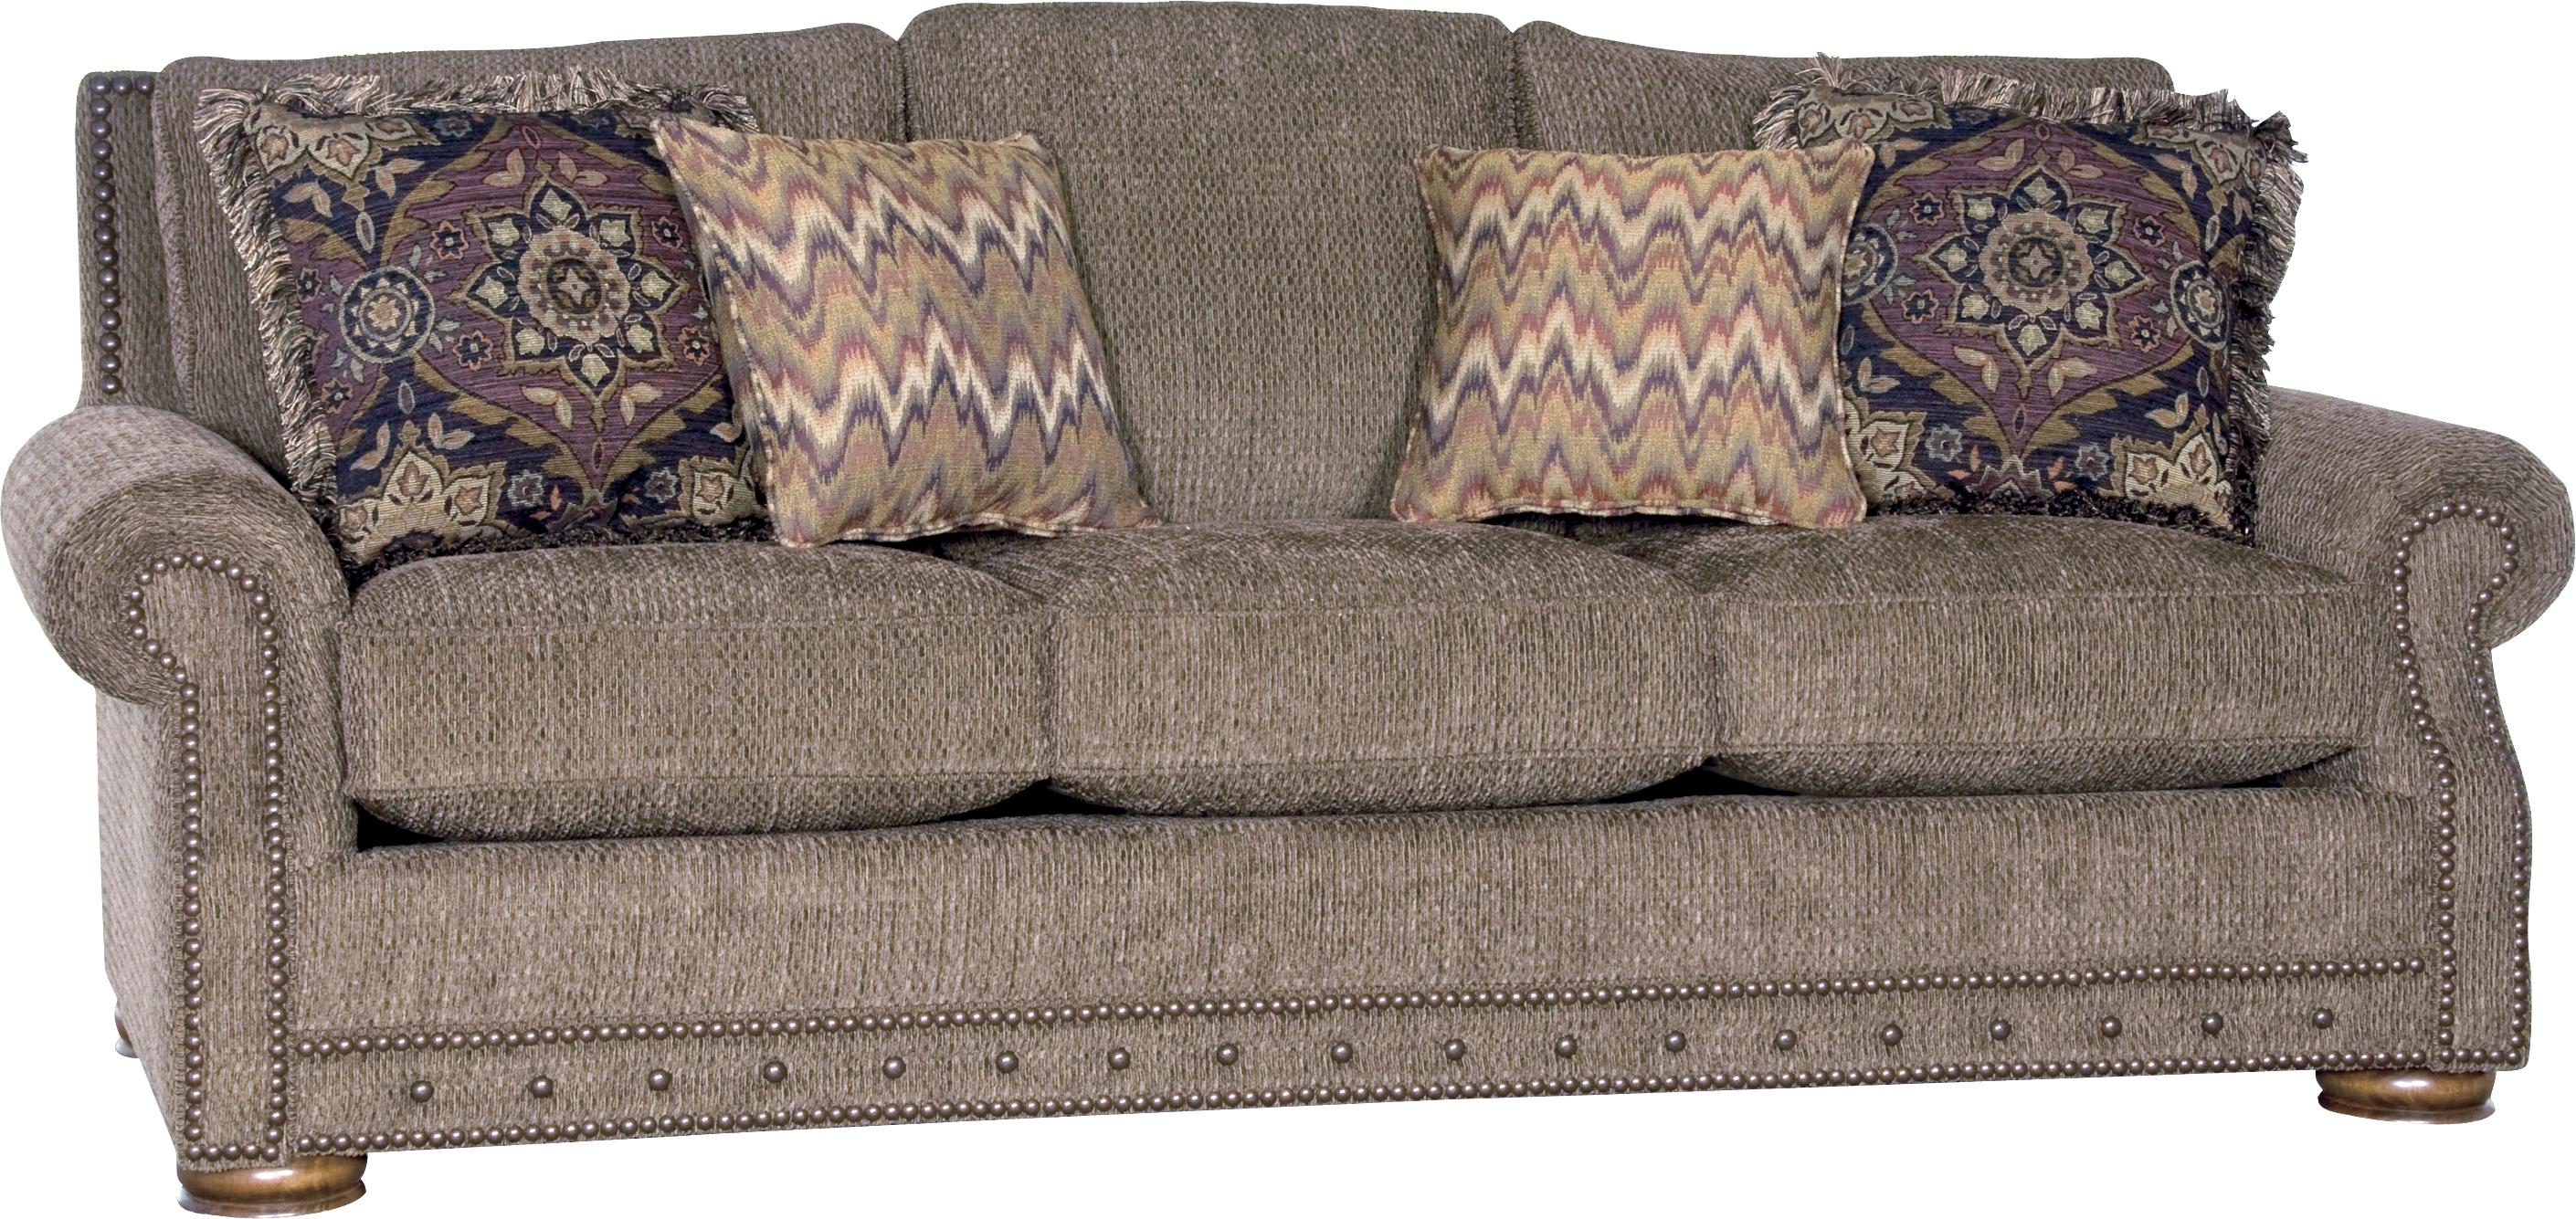 2900 Traditional Sofa by Mayo at Wilcox Furniture